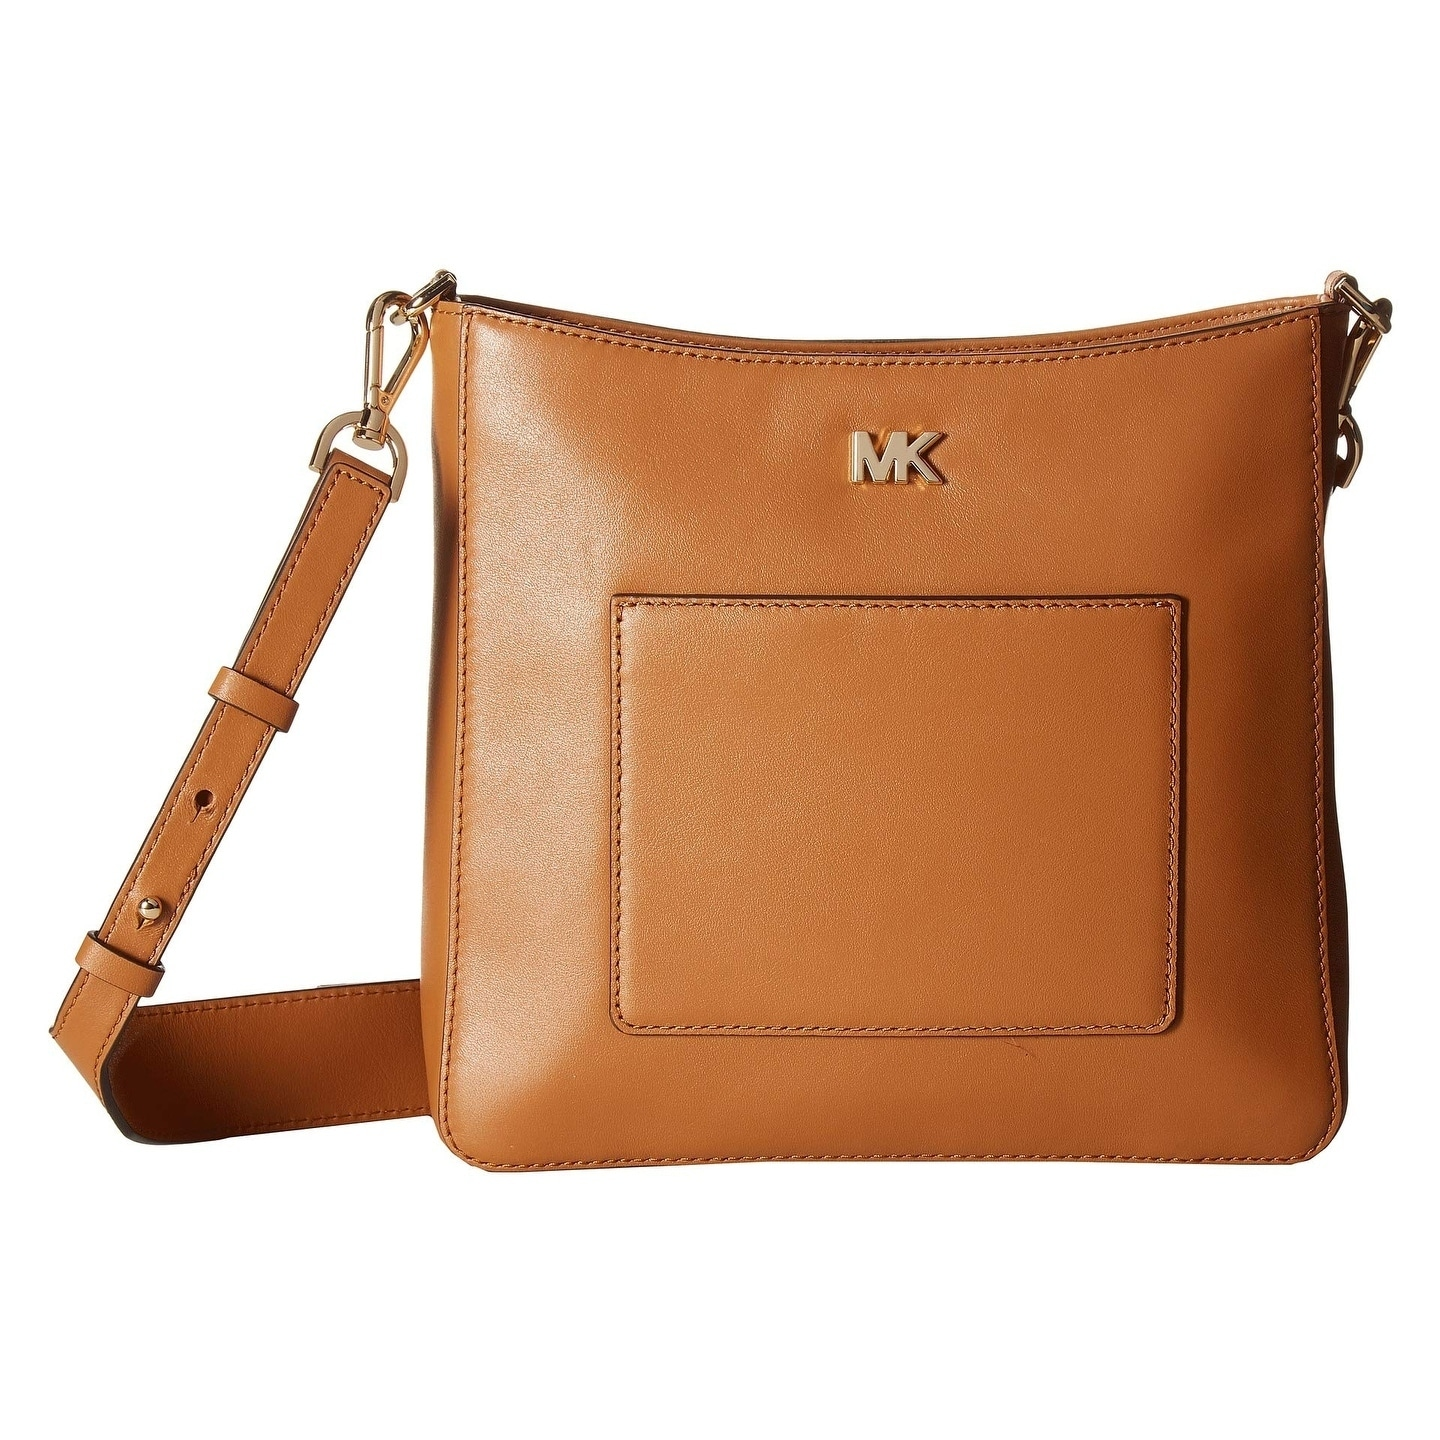 6a499e9e9 Shop Michael Kors Gloria Pocket Swing Pack - On Sale - Free Shipping Today  - Overstock - 25601273